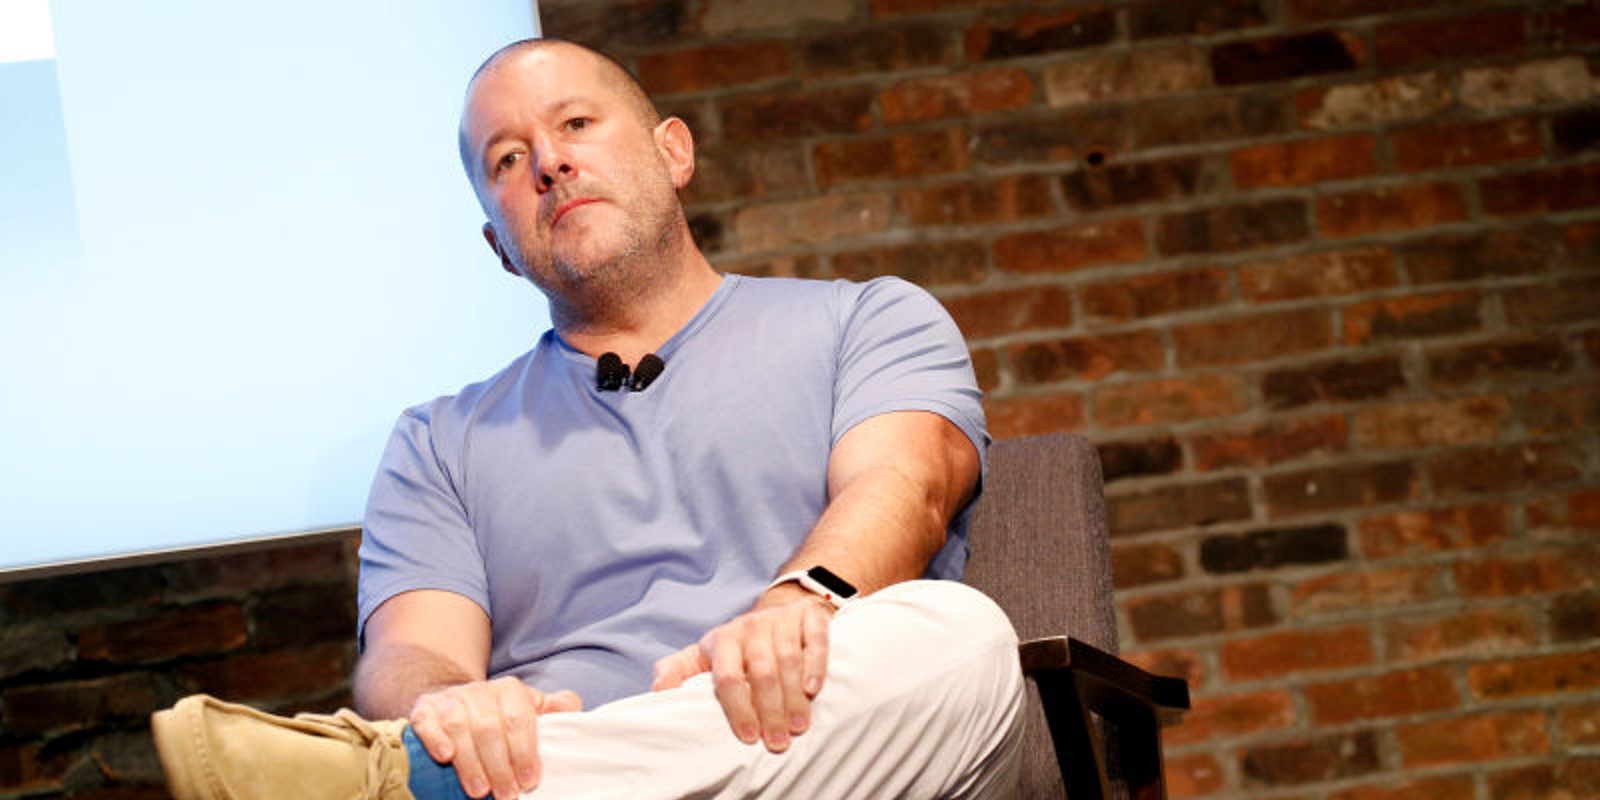 Airbnb announces multi-year partnership with Jony Ive, a year after leaving Apple by @bzamayo